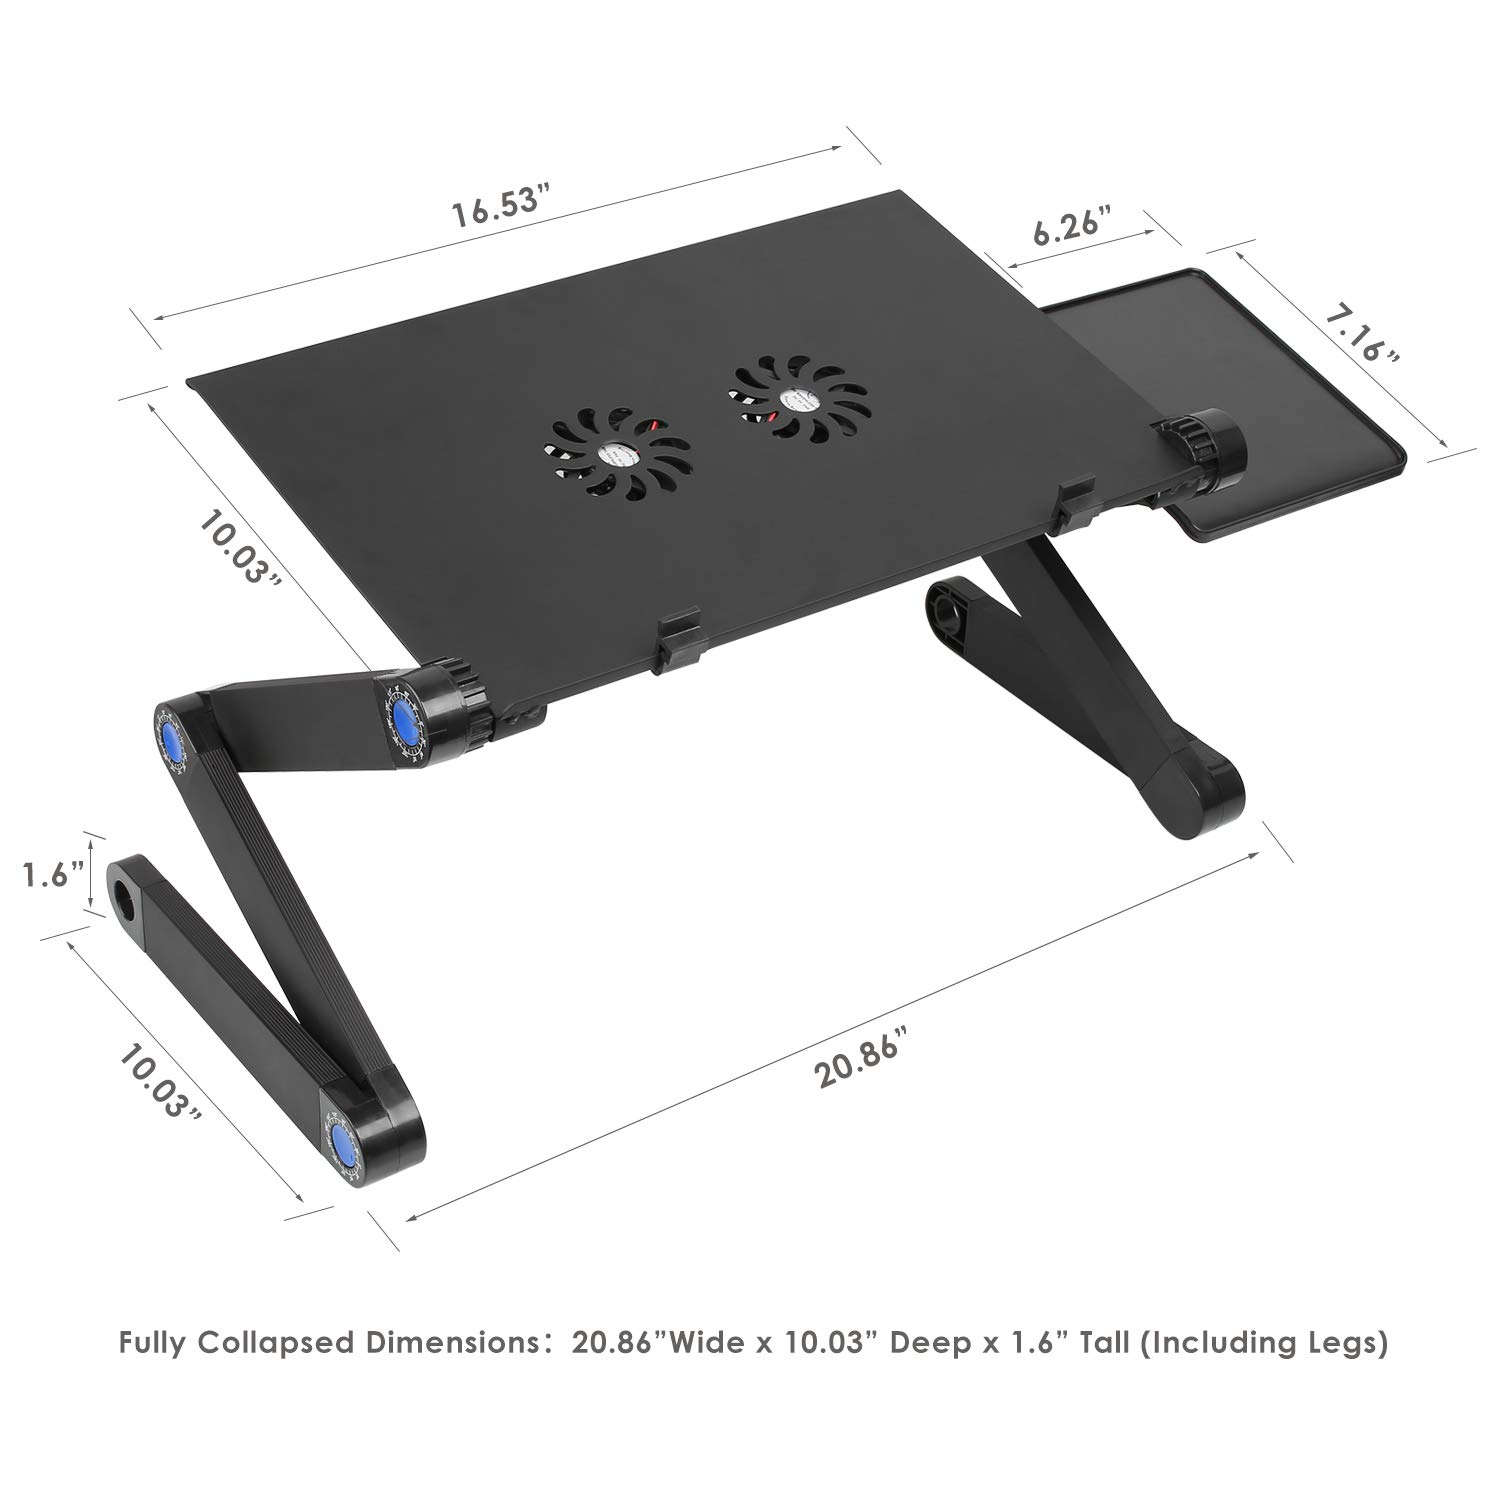 Femor Laptop Stand for Bed and Sofa Adjustable Lap Desk Portable Laptop Table Stand with 2 CPU Cooling Fans and Mouse Pad for 10in 17in Notebook MacBook and Tablet